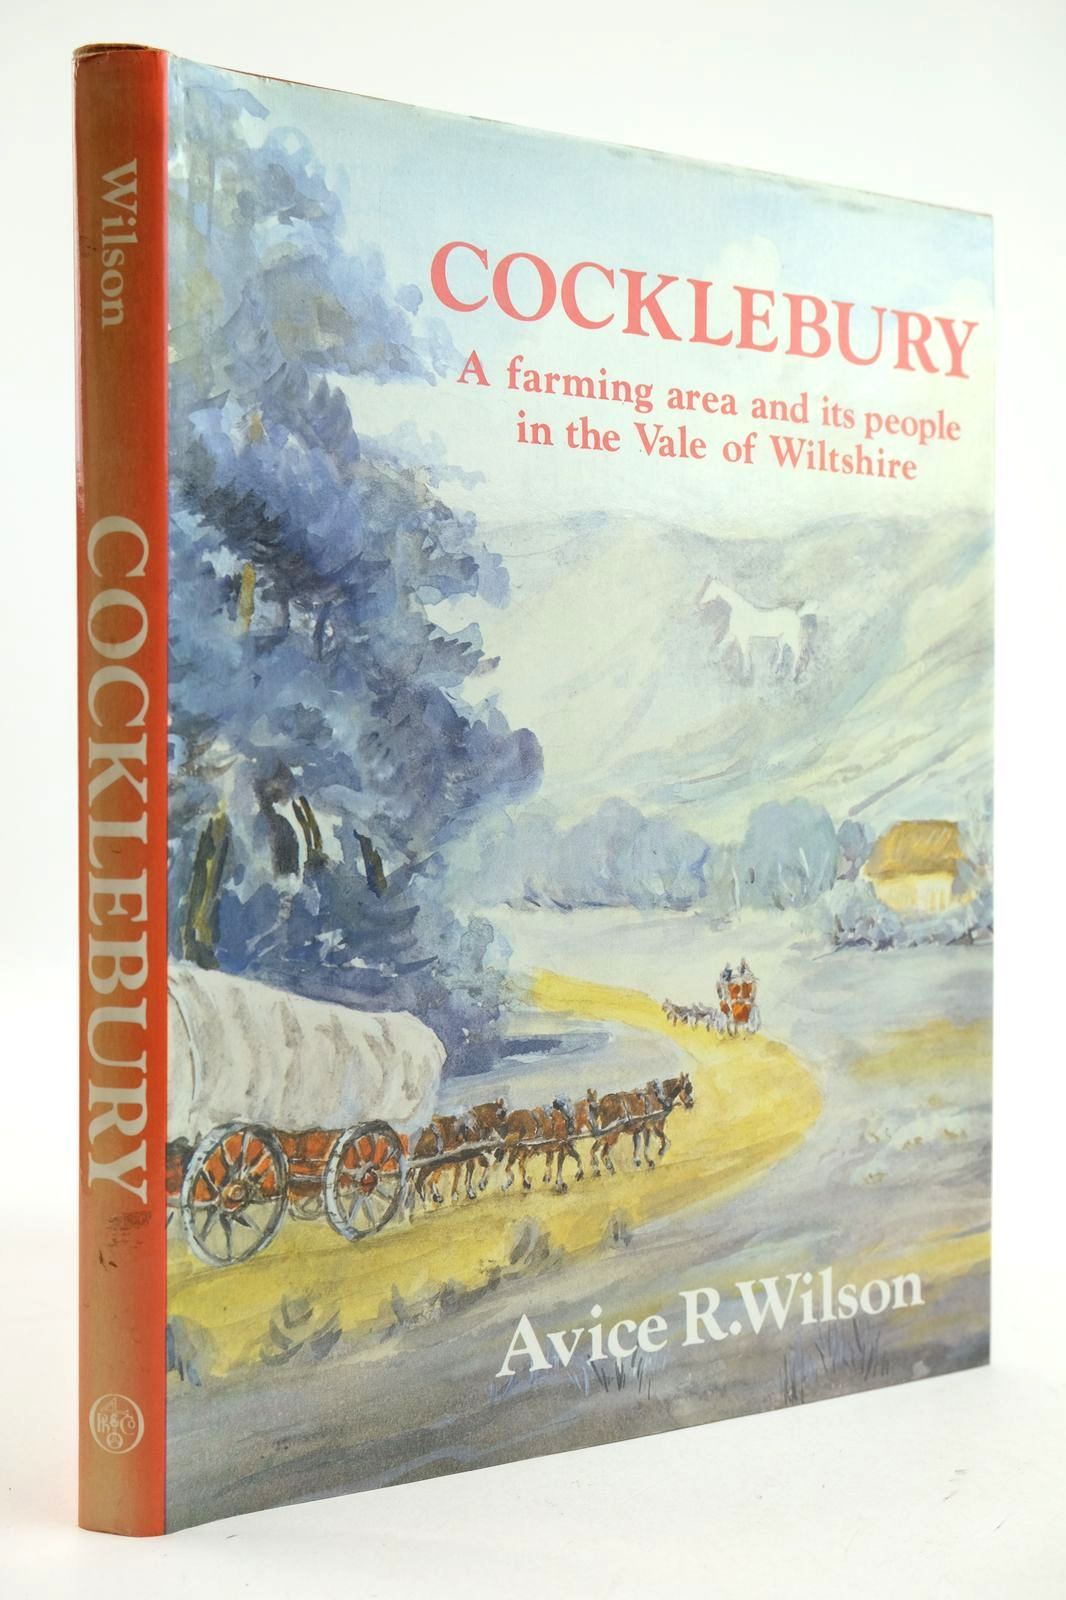 Photo of COCKLEBURY A FARMING AREA AND ITS PEOPLE IN THE VALE OF WILTSHIRE written by Wilson, Avice R. illustrated by Wallis, Tobie Pedersen, Henry published by Phillimore (STOCK CODE: 2132581)  for sale by Stella & Rose's Books